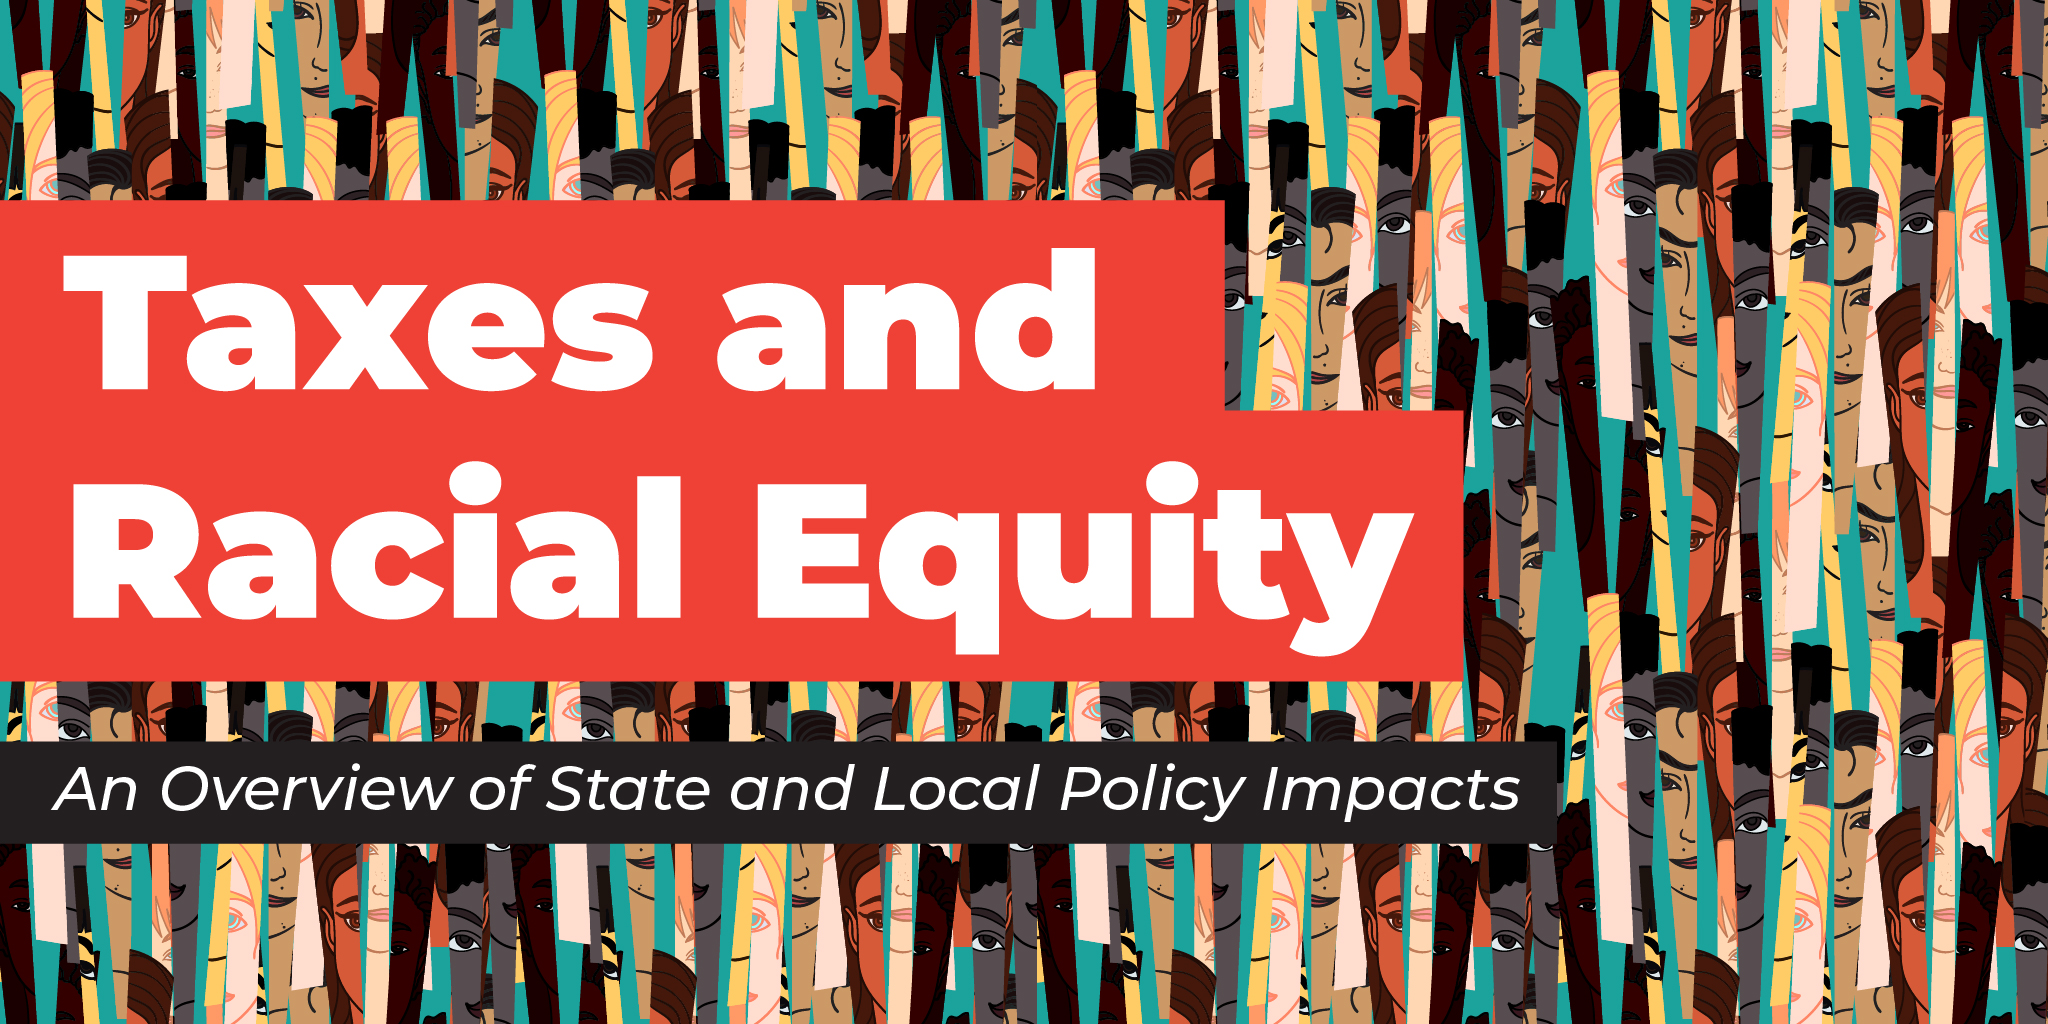 Taxes and Racial Equity